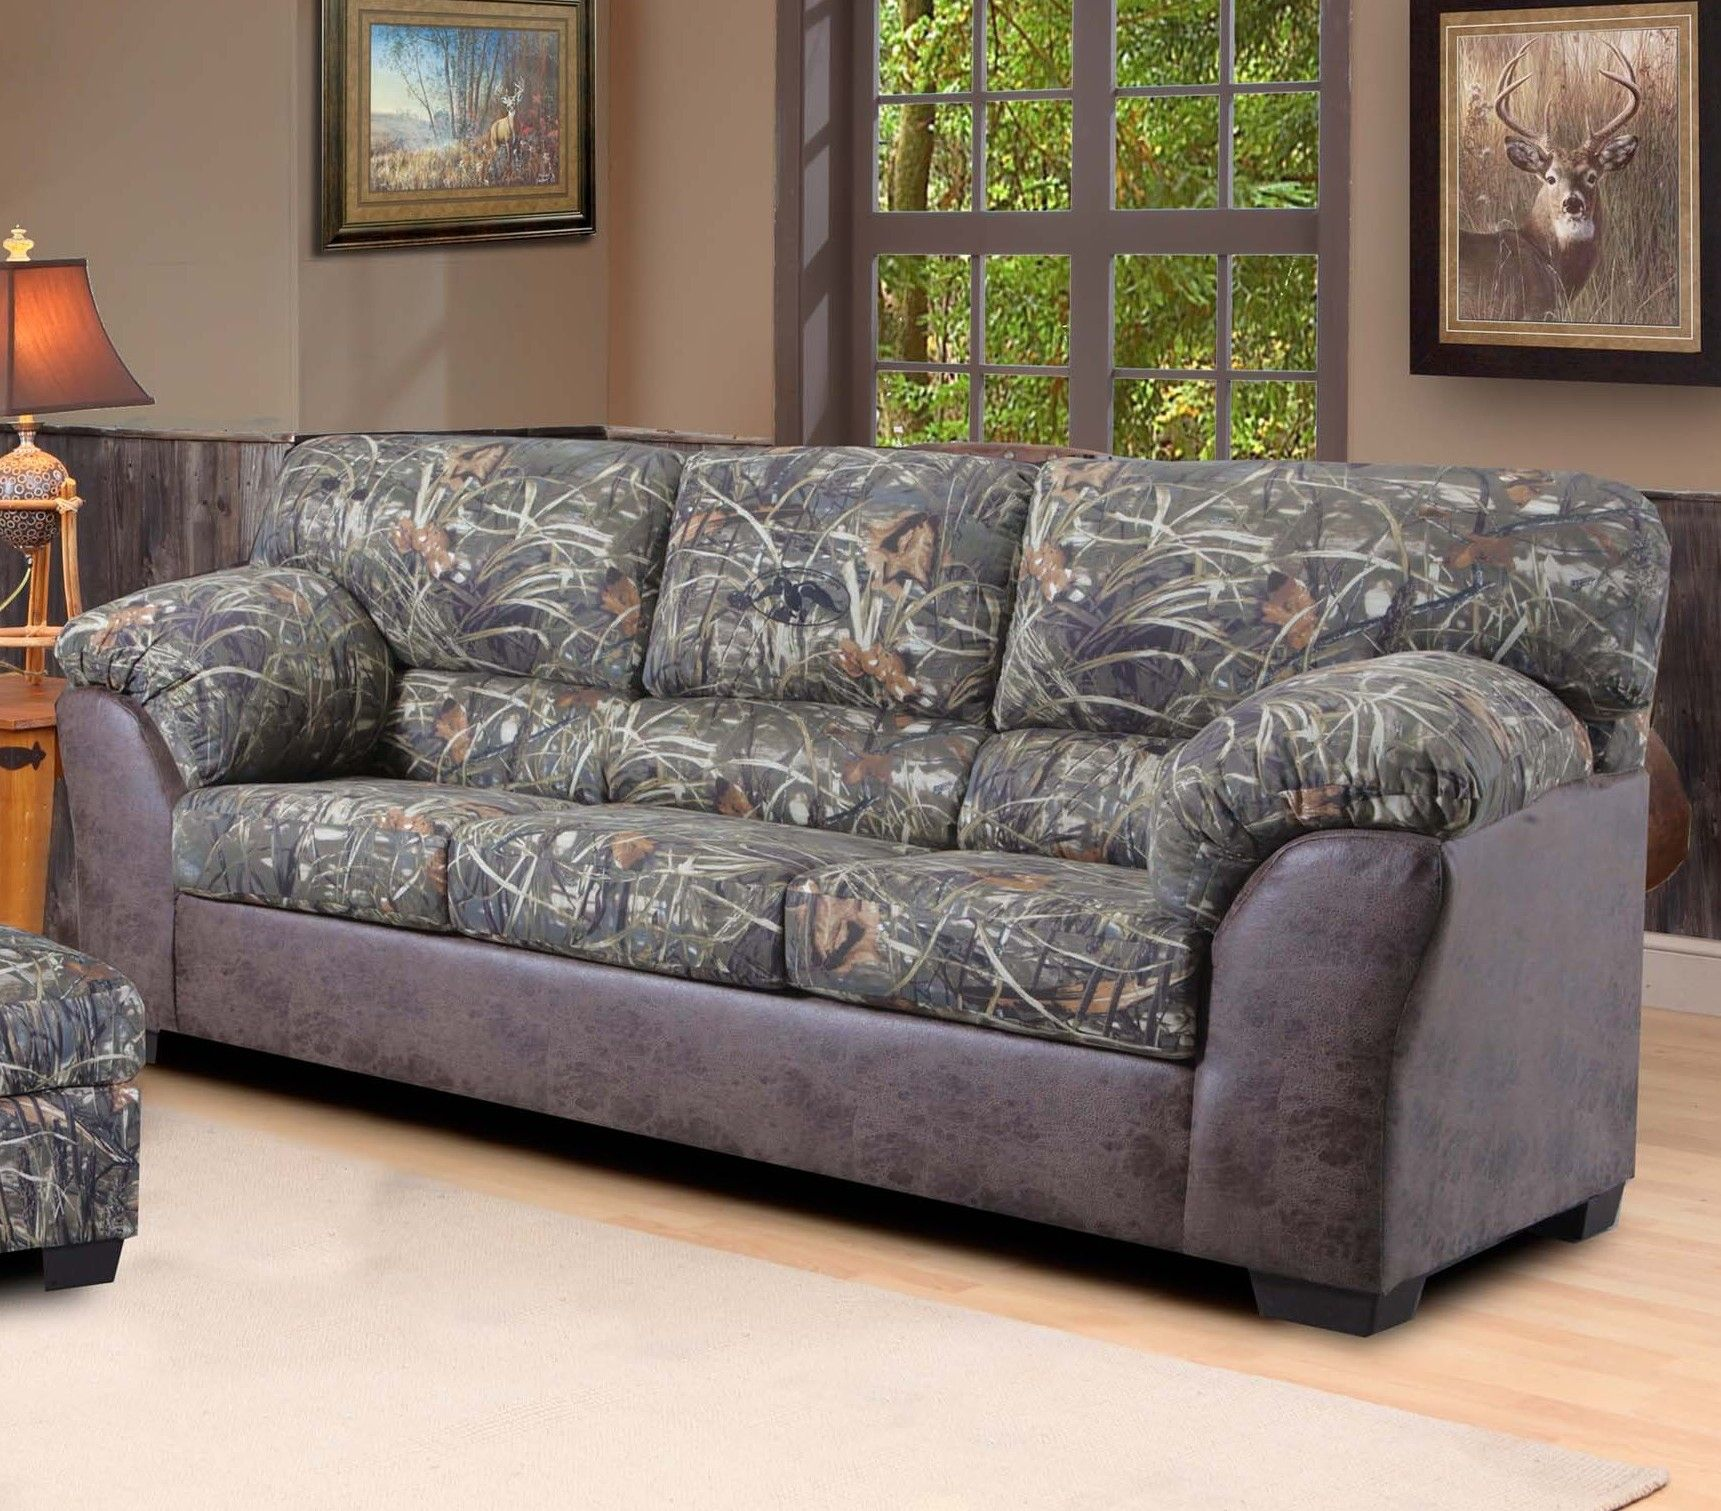 camouflage cover set warm covers lodge quilted gallery pet microfiber chair sofa multi furniture and couch camo